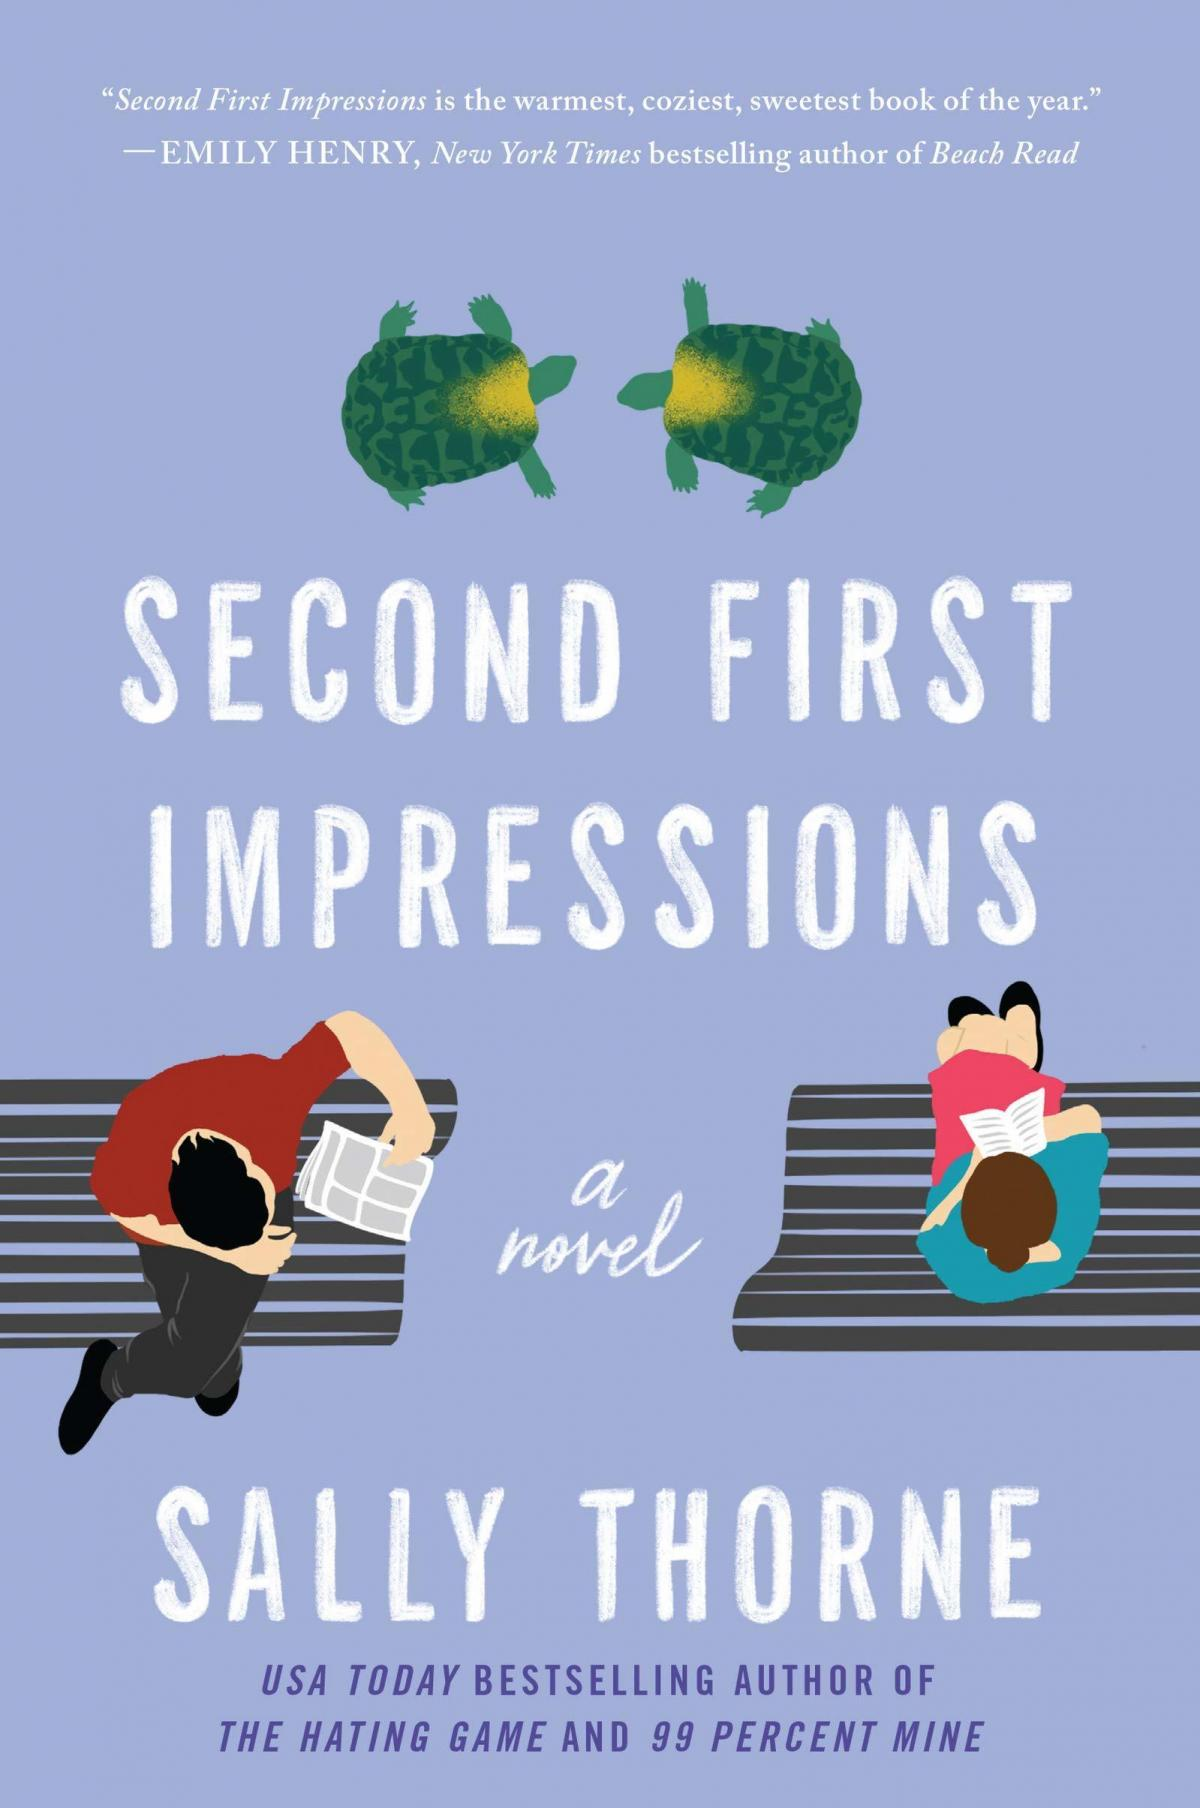 Second First Impressions, by Sally Thorne